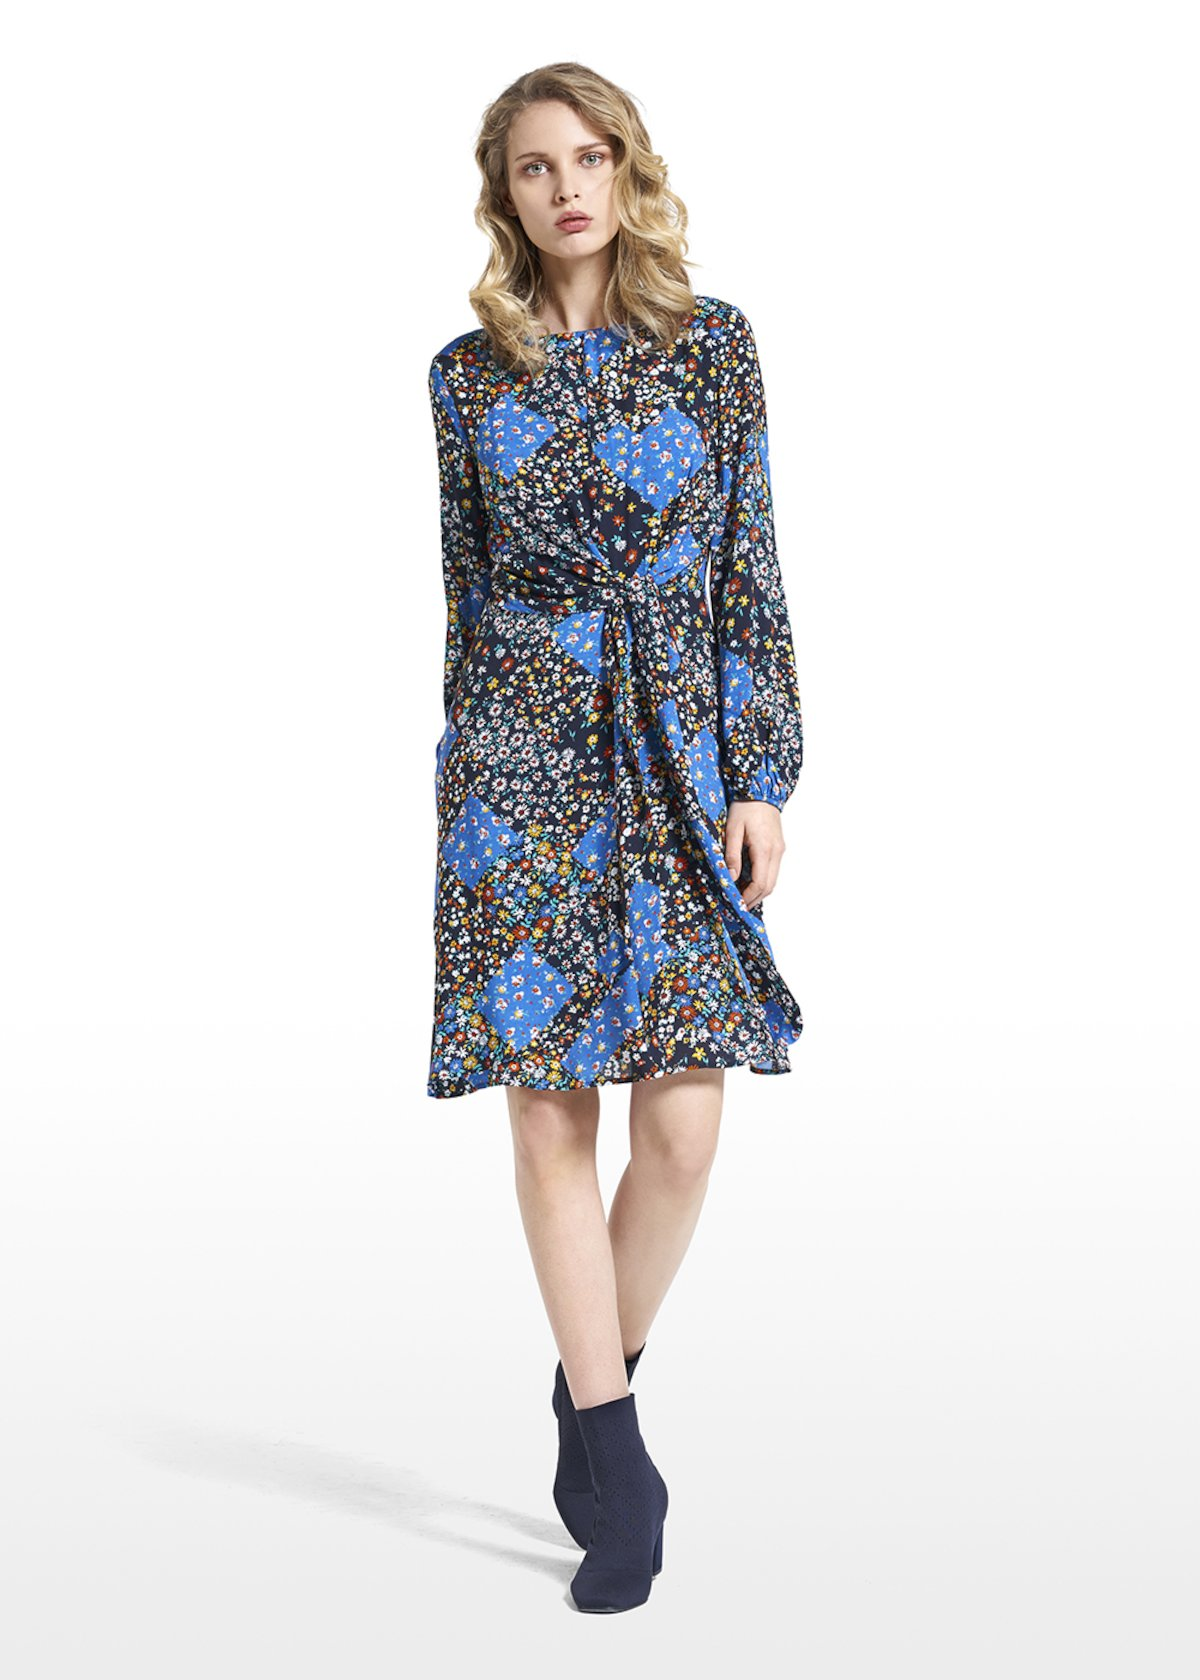 Dress Adamo patterned covent garden with dro-shaped neckline